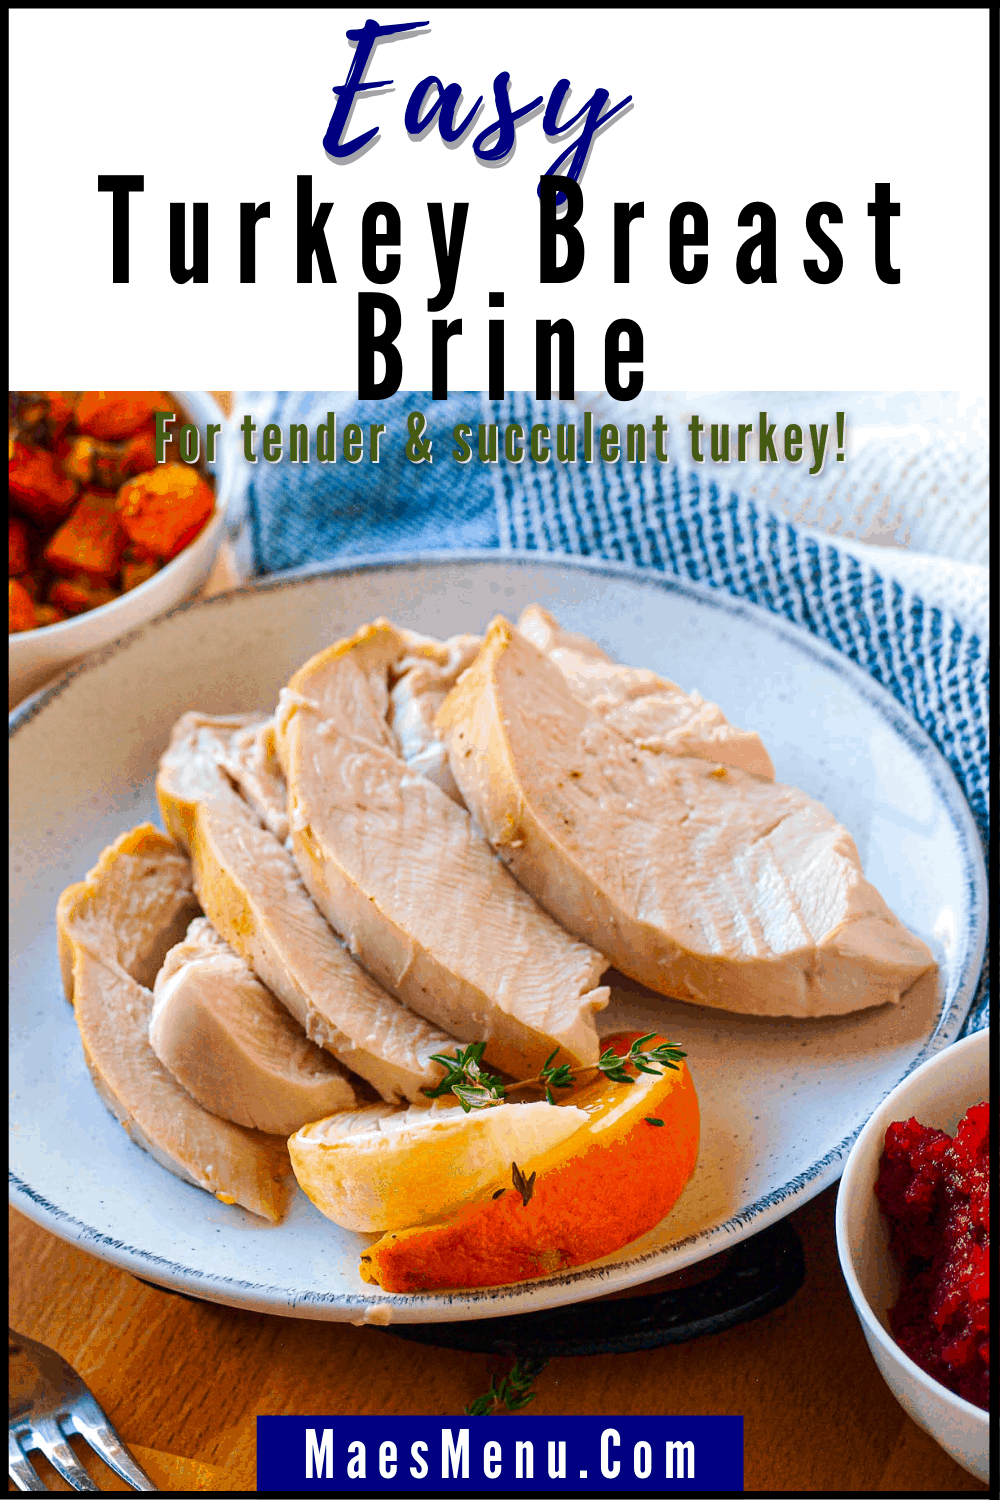 a pinterest pin for Easy Turkey Breast Brine. For tender & succulent turkey! On the picture is an up-close image of juicy sliced turkey